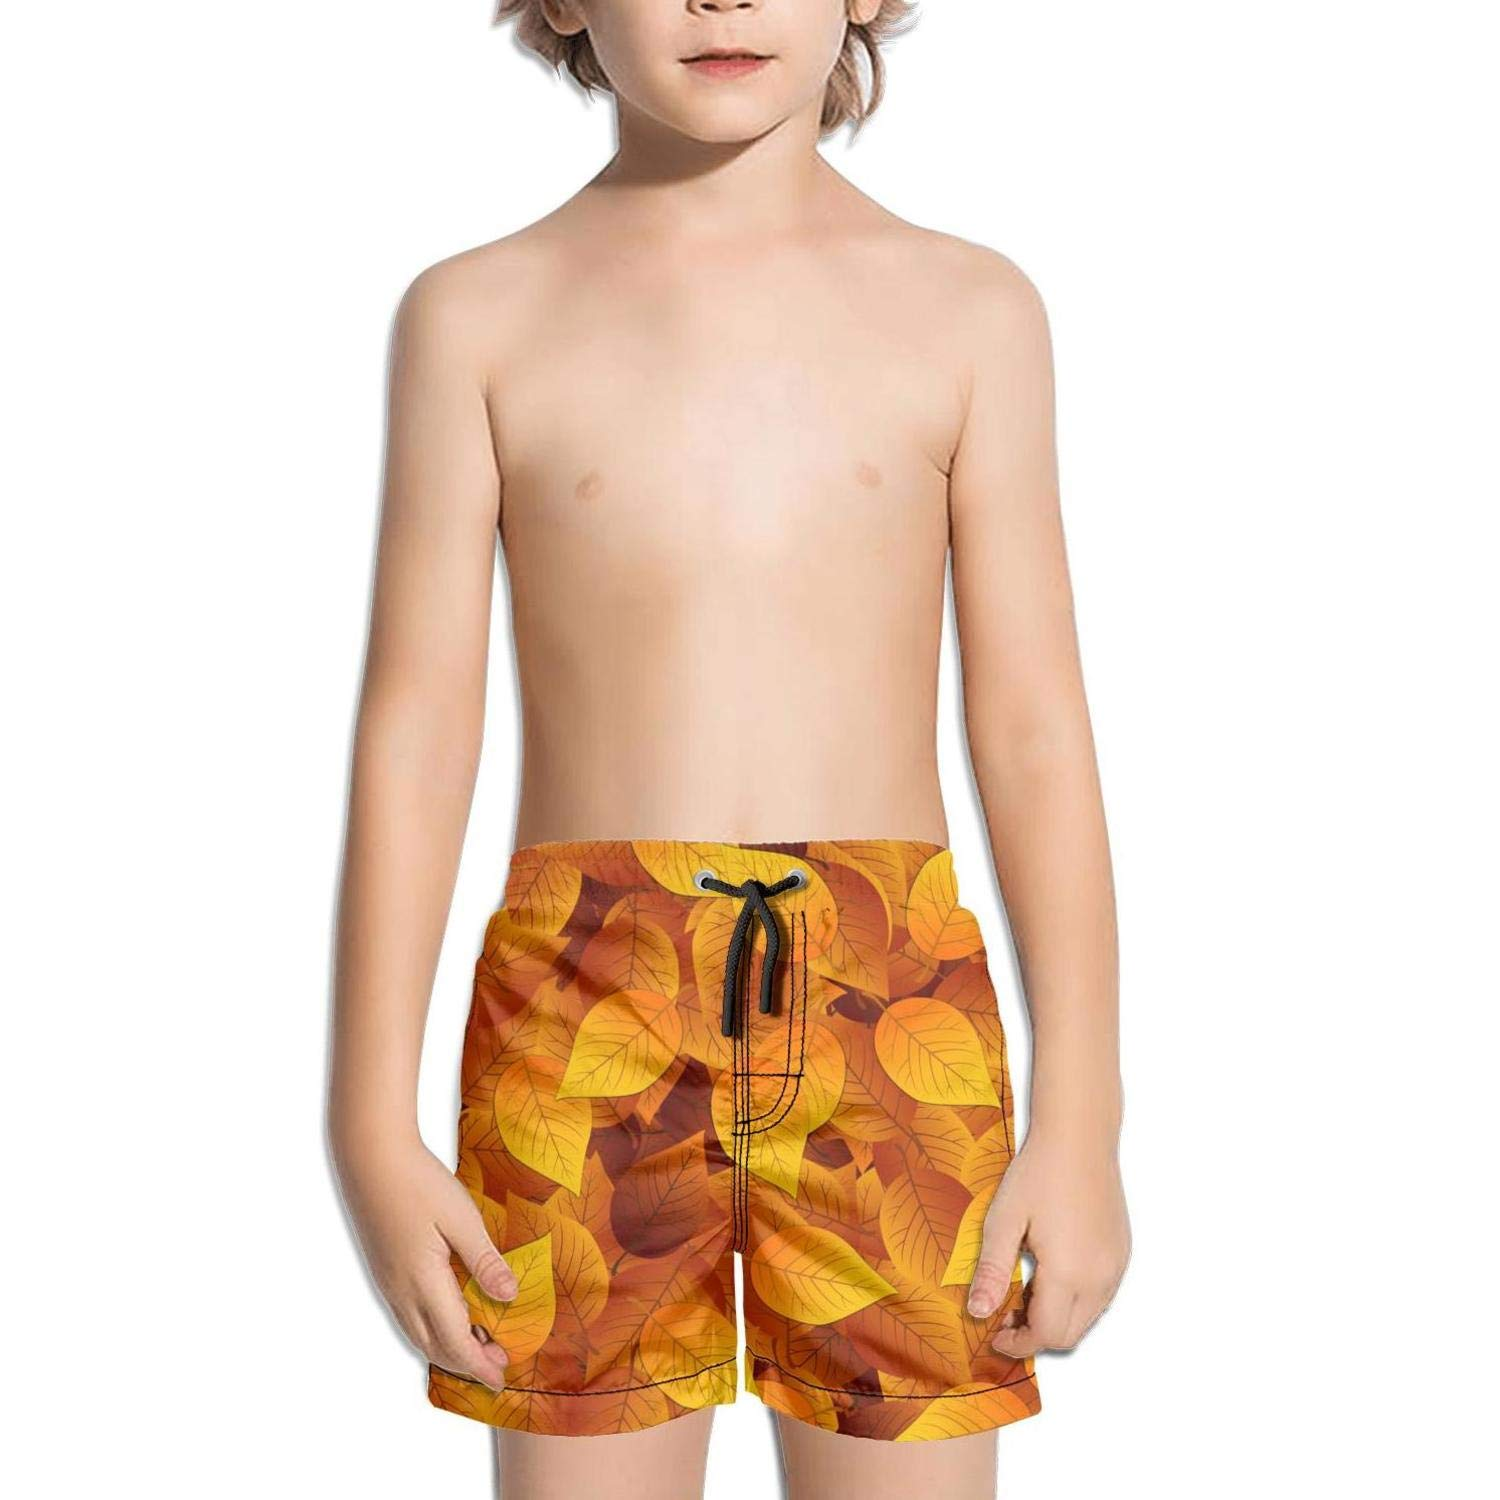 Lenard Hughes Boys Quick Dry Beach Shorts with Pockets Autumn Leaves Tropical Wallpaper Swim Trunks for Summer